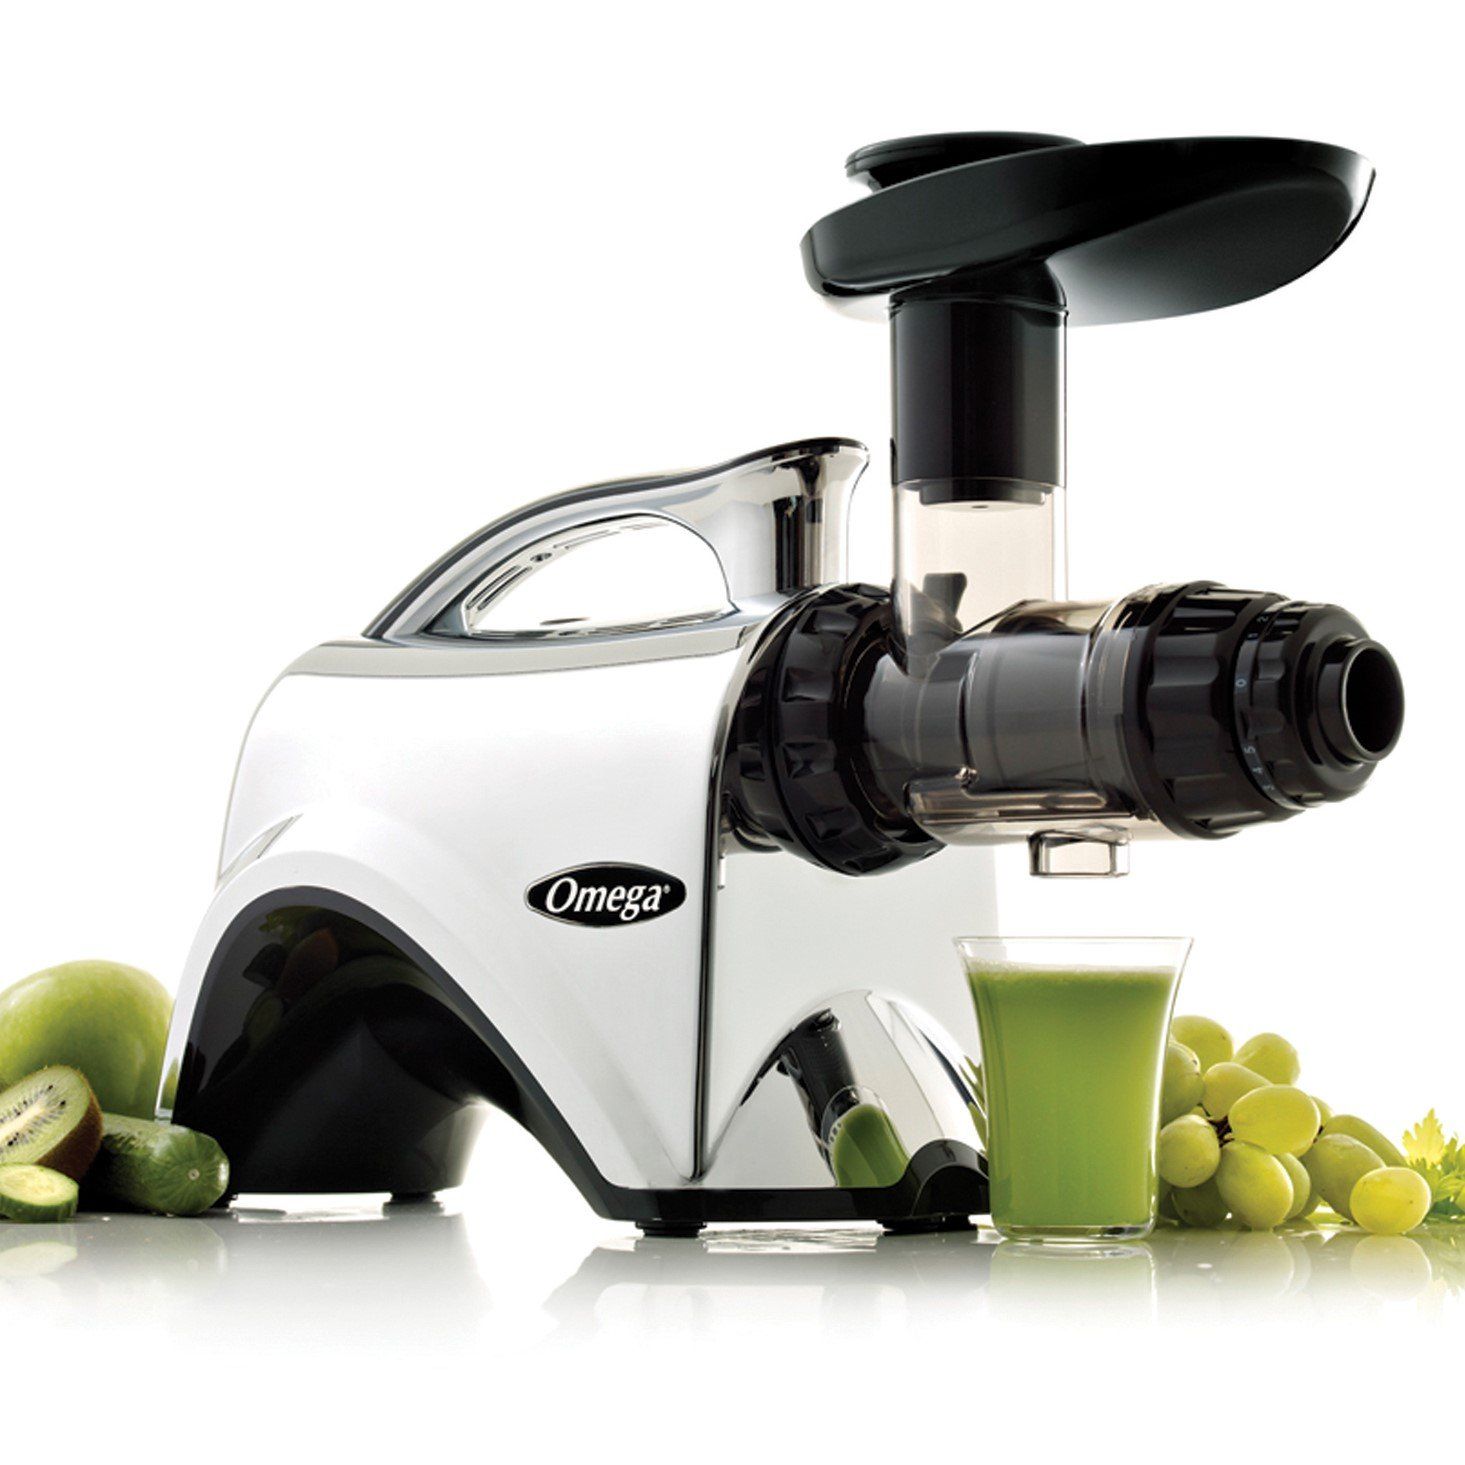 Omega NC900HDC Juicer Extractor and Nutrition Center Creates Fruit Vegetable and Wheatgrass Juice Quiet Motor Slow Masticating Dual-Stage Extraction with Adjustable Settings, 150-Watt, Metallic by Omega Juicers